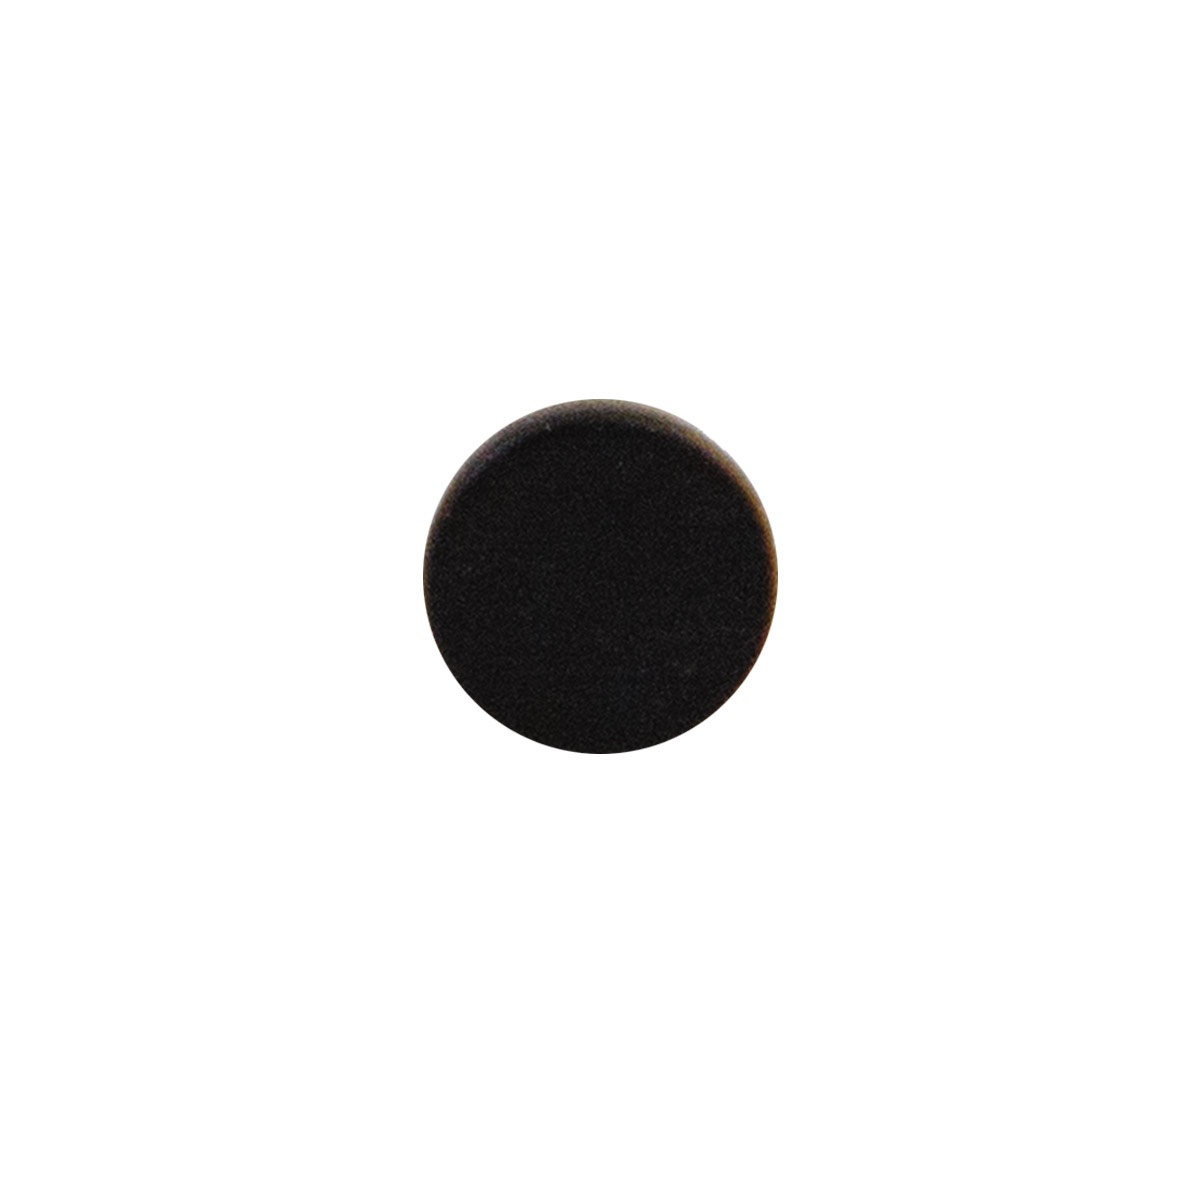 30-4305-0028, Knob Cap for GPX Series